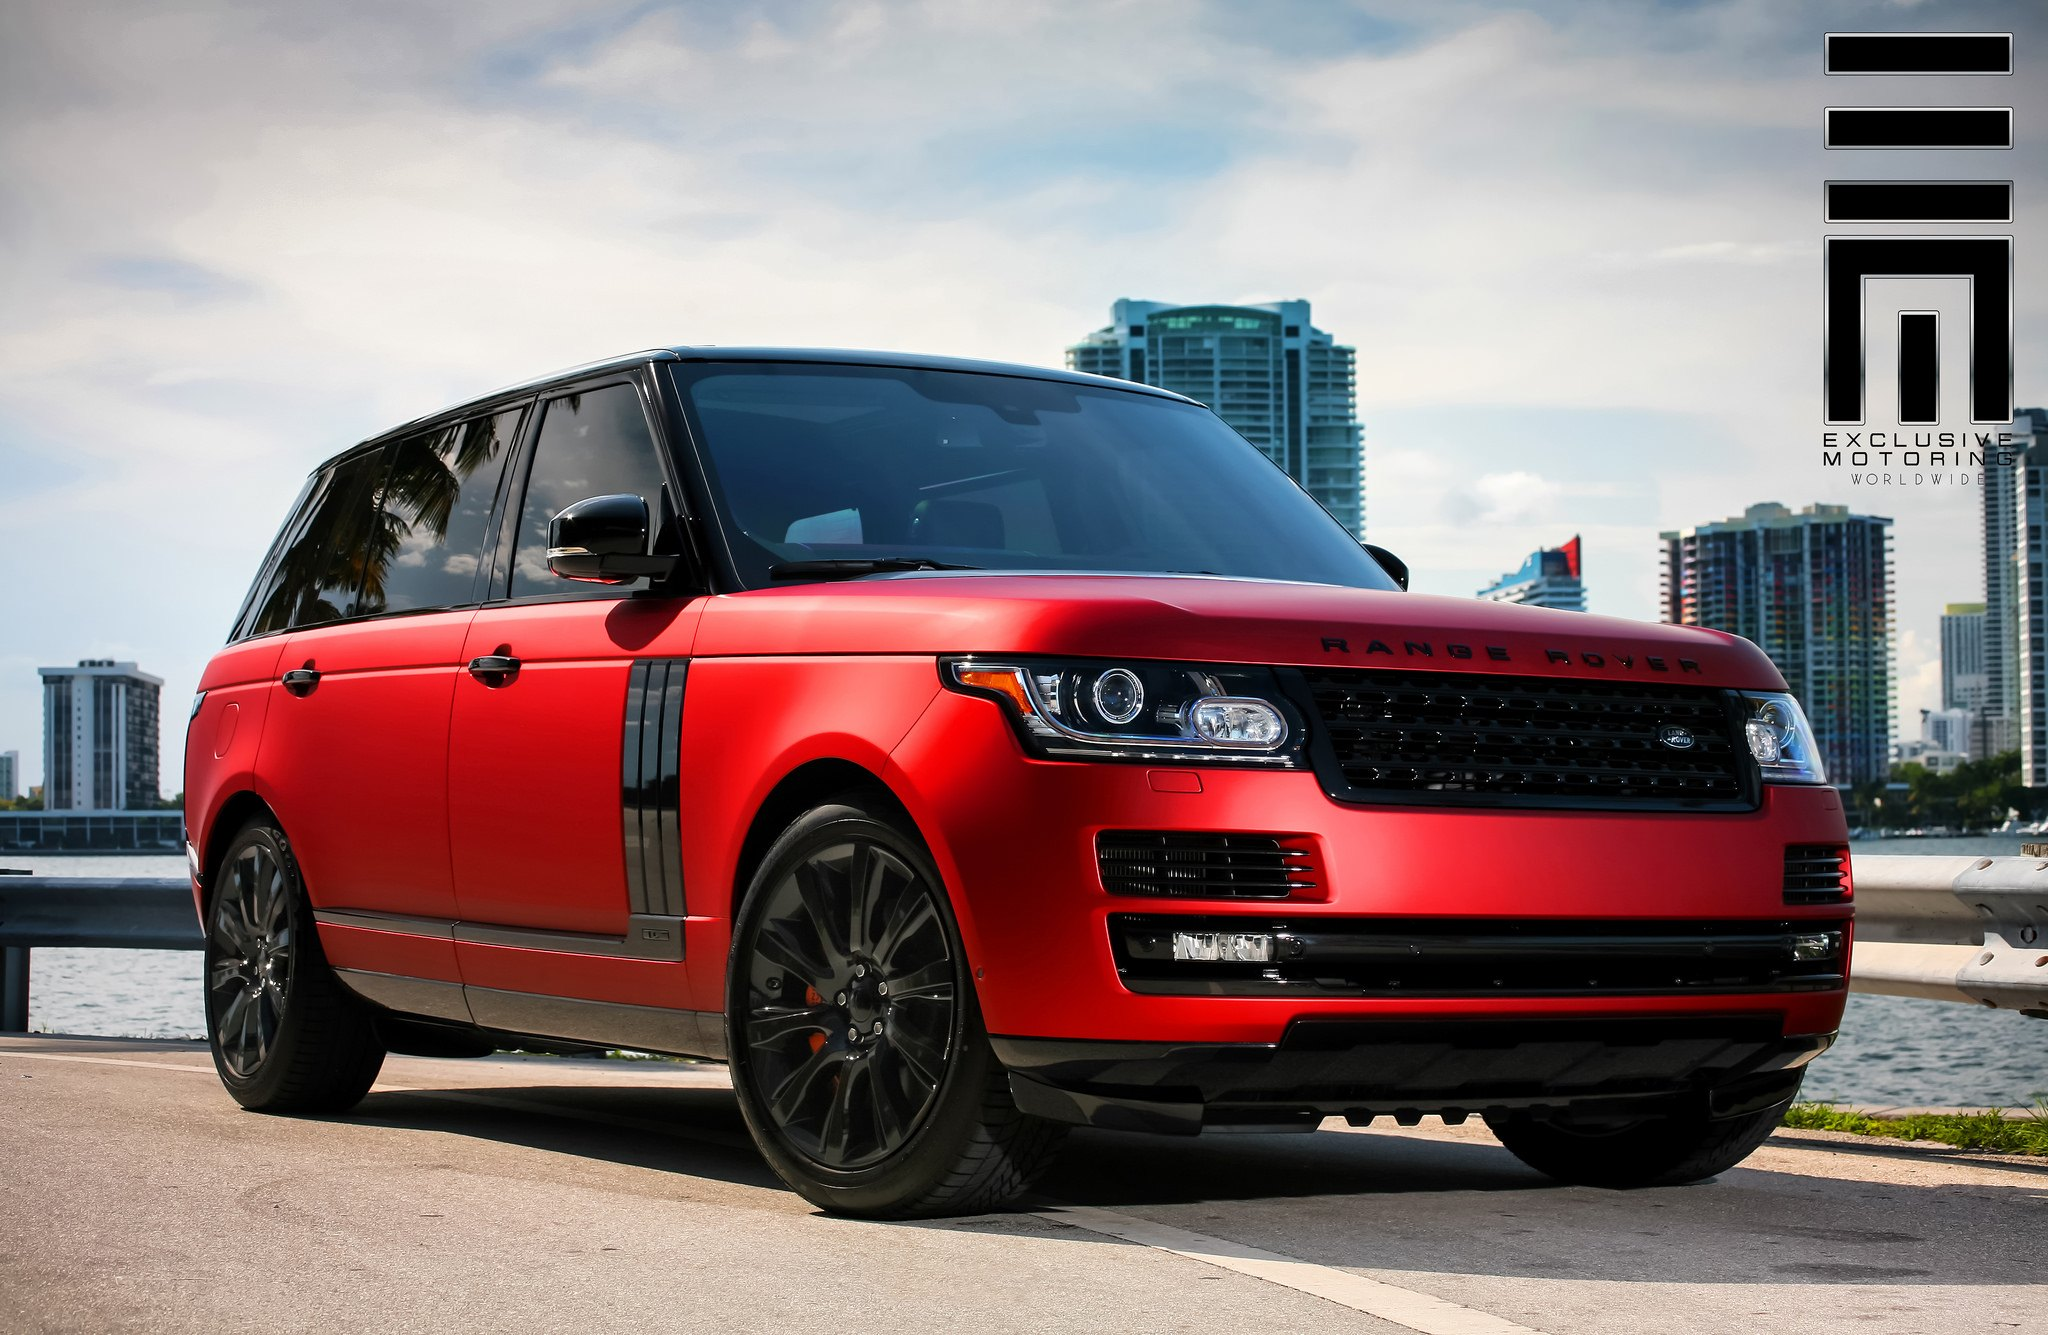 Red Matte Range Rover on Black Wheels by Exclusive Motoring